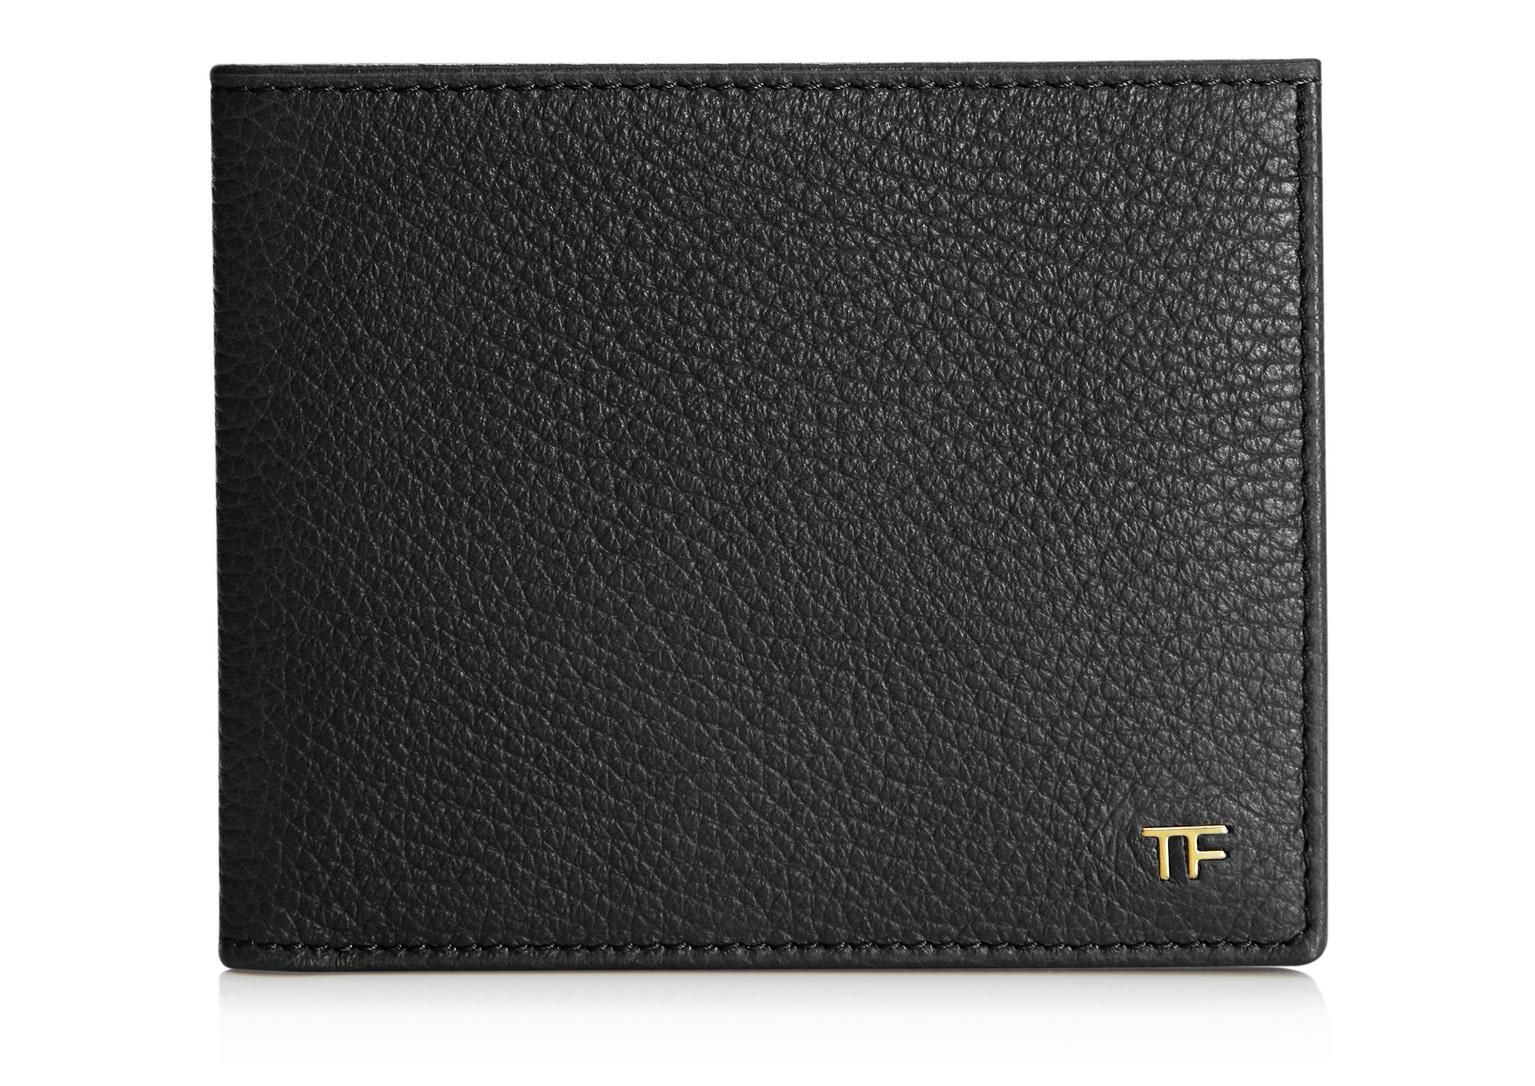 Tom Ford Bi-Fold Wallet Pebbled Black